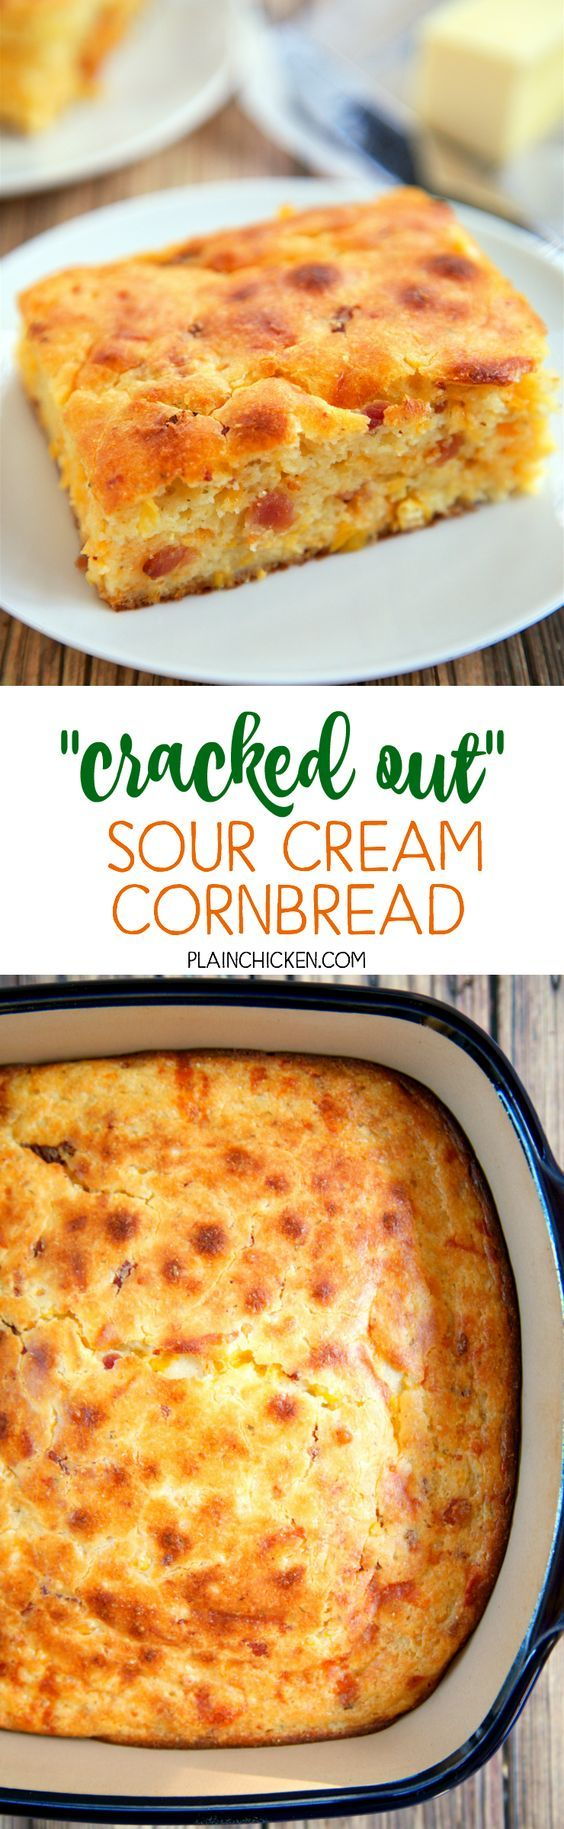 """Cracked Out"" Sour Cream Cornbread 